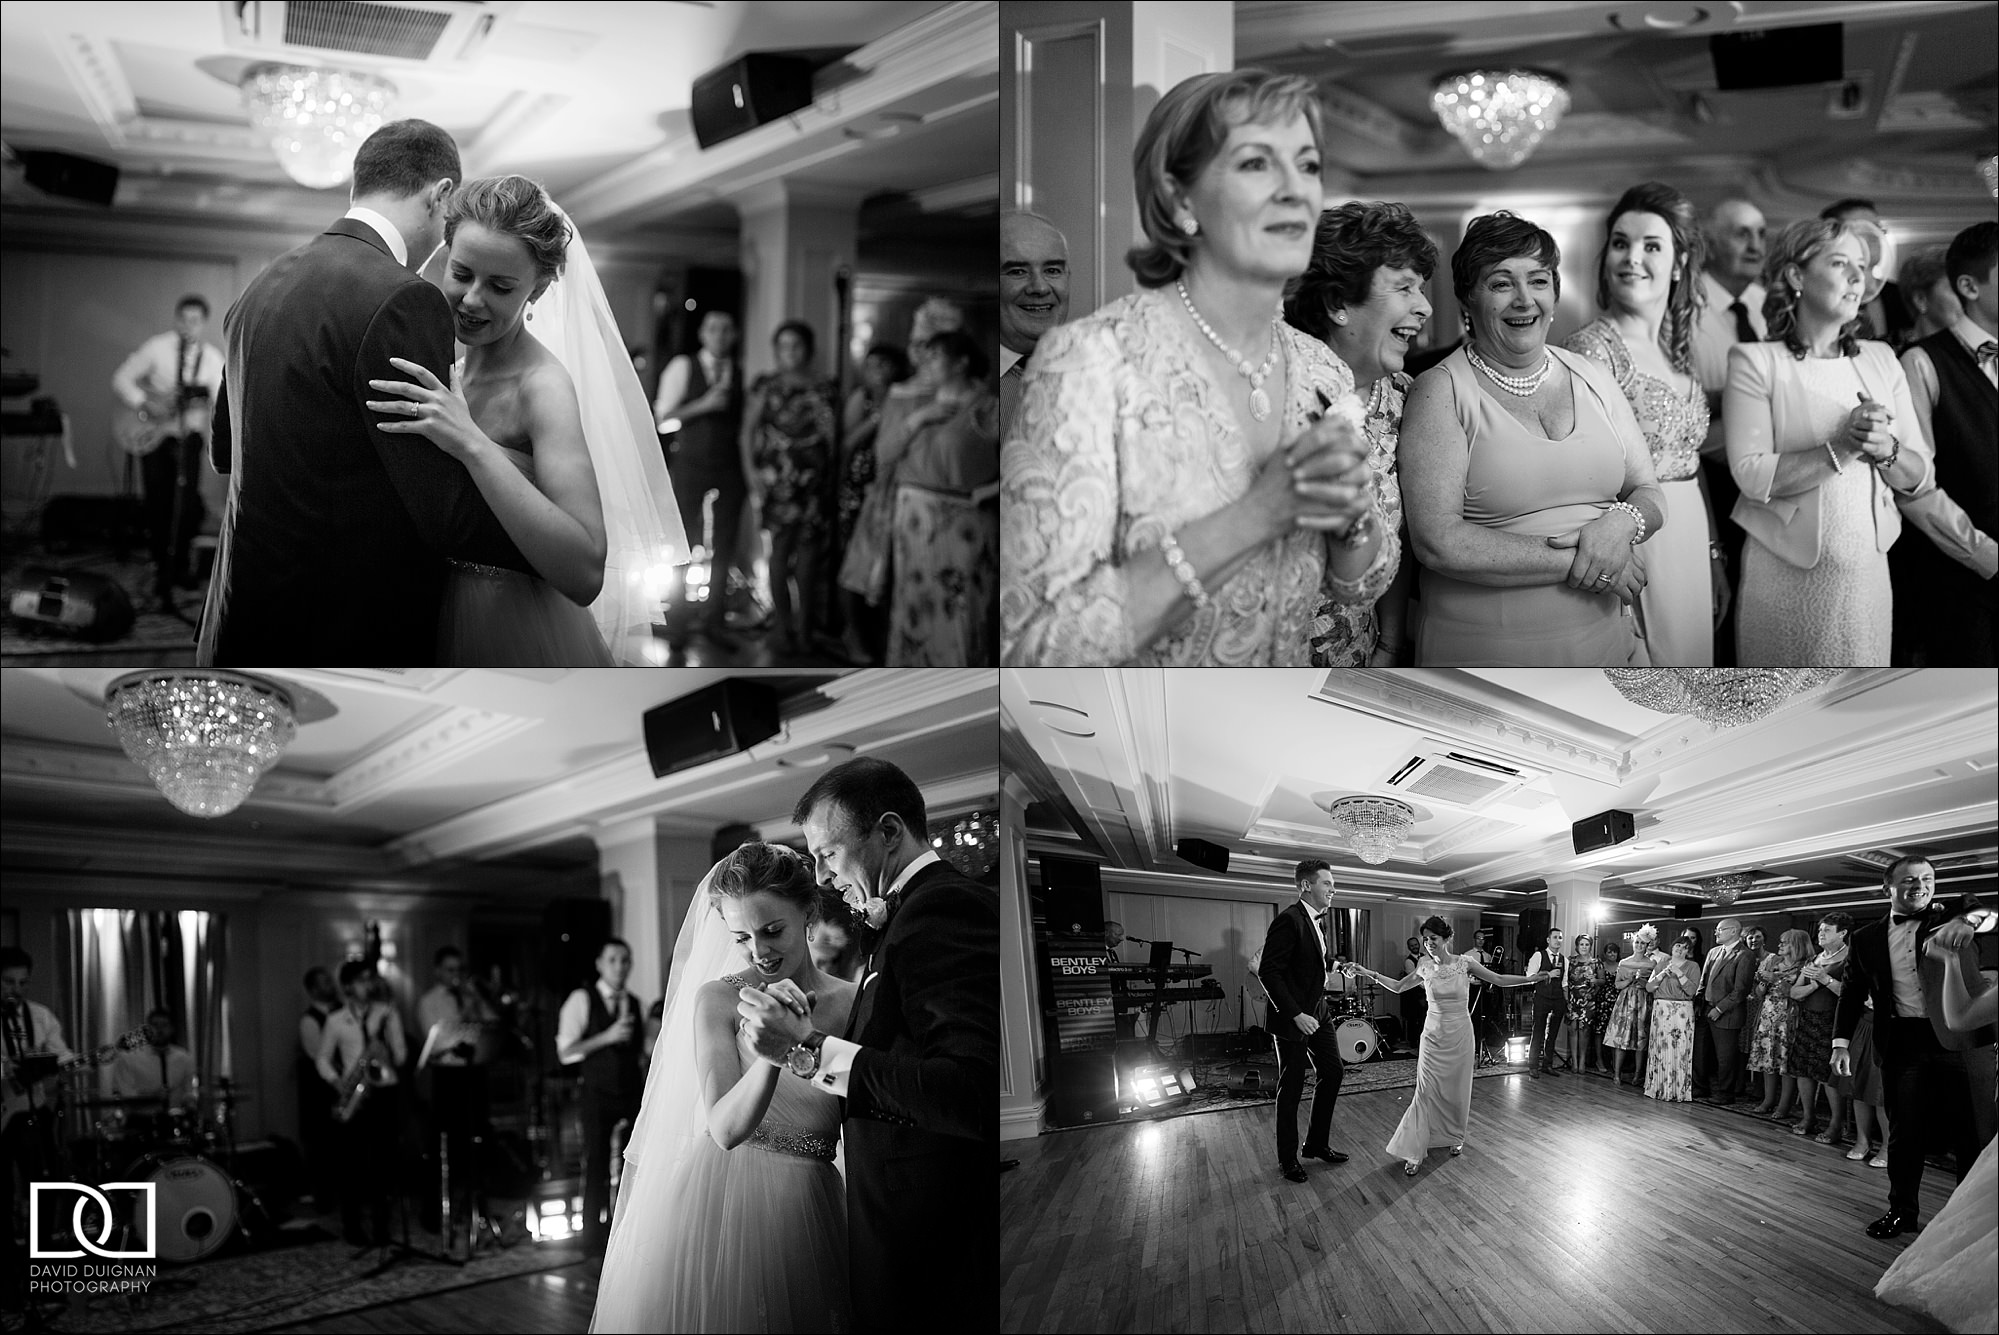 louth wedding photographer david duignan photography castle bellingham wedding Ireland 0068